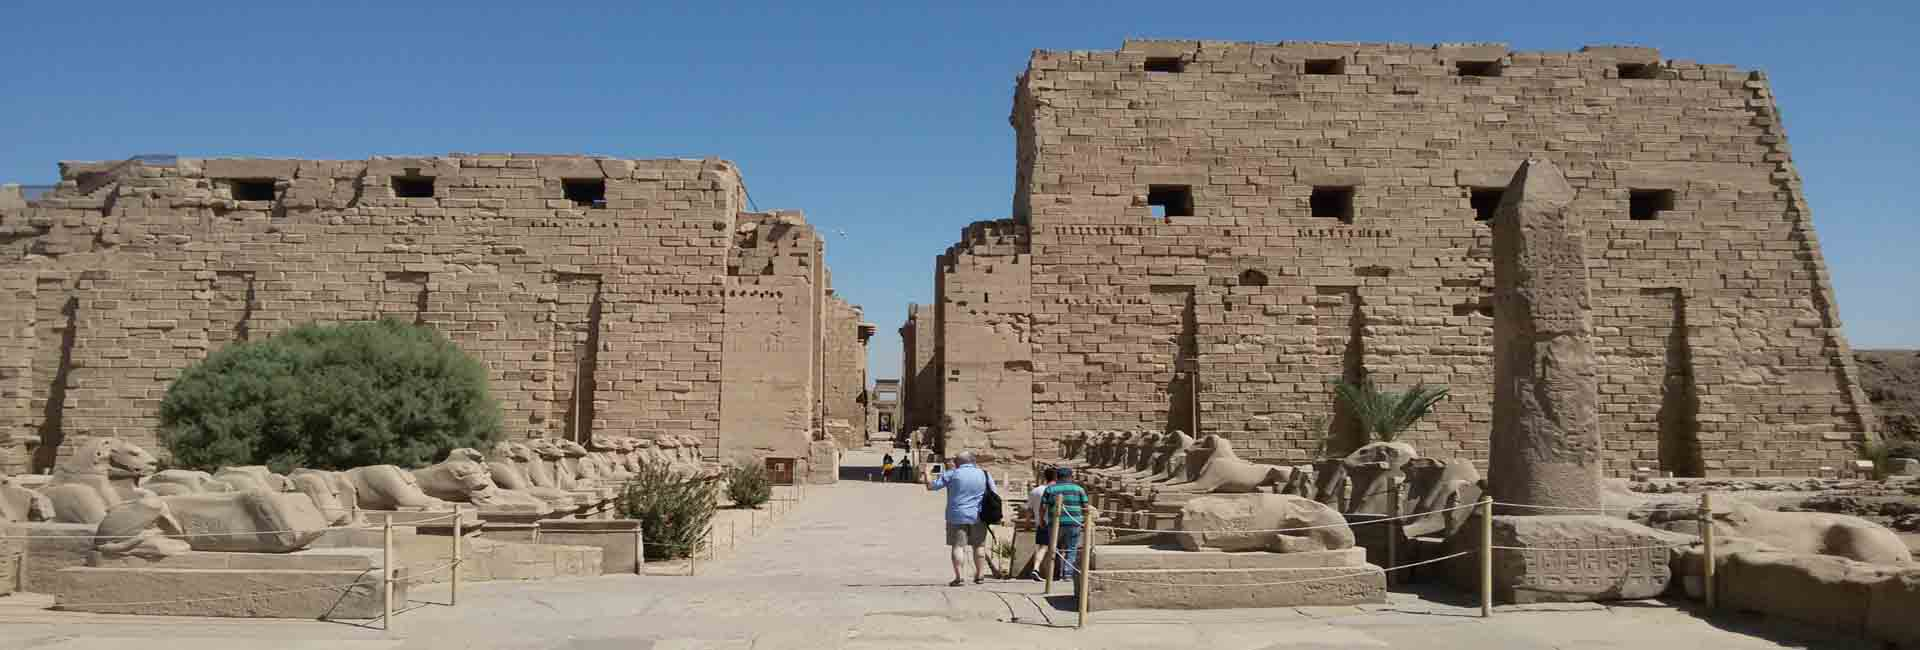 Tour to Luxor 3 Days